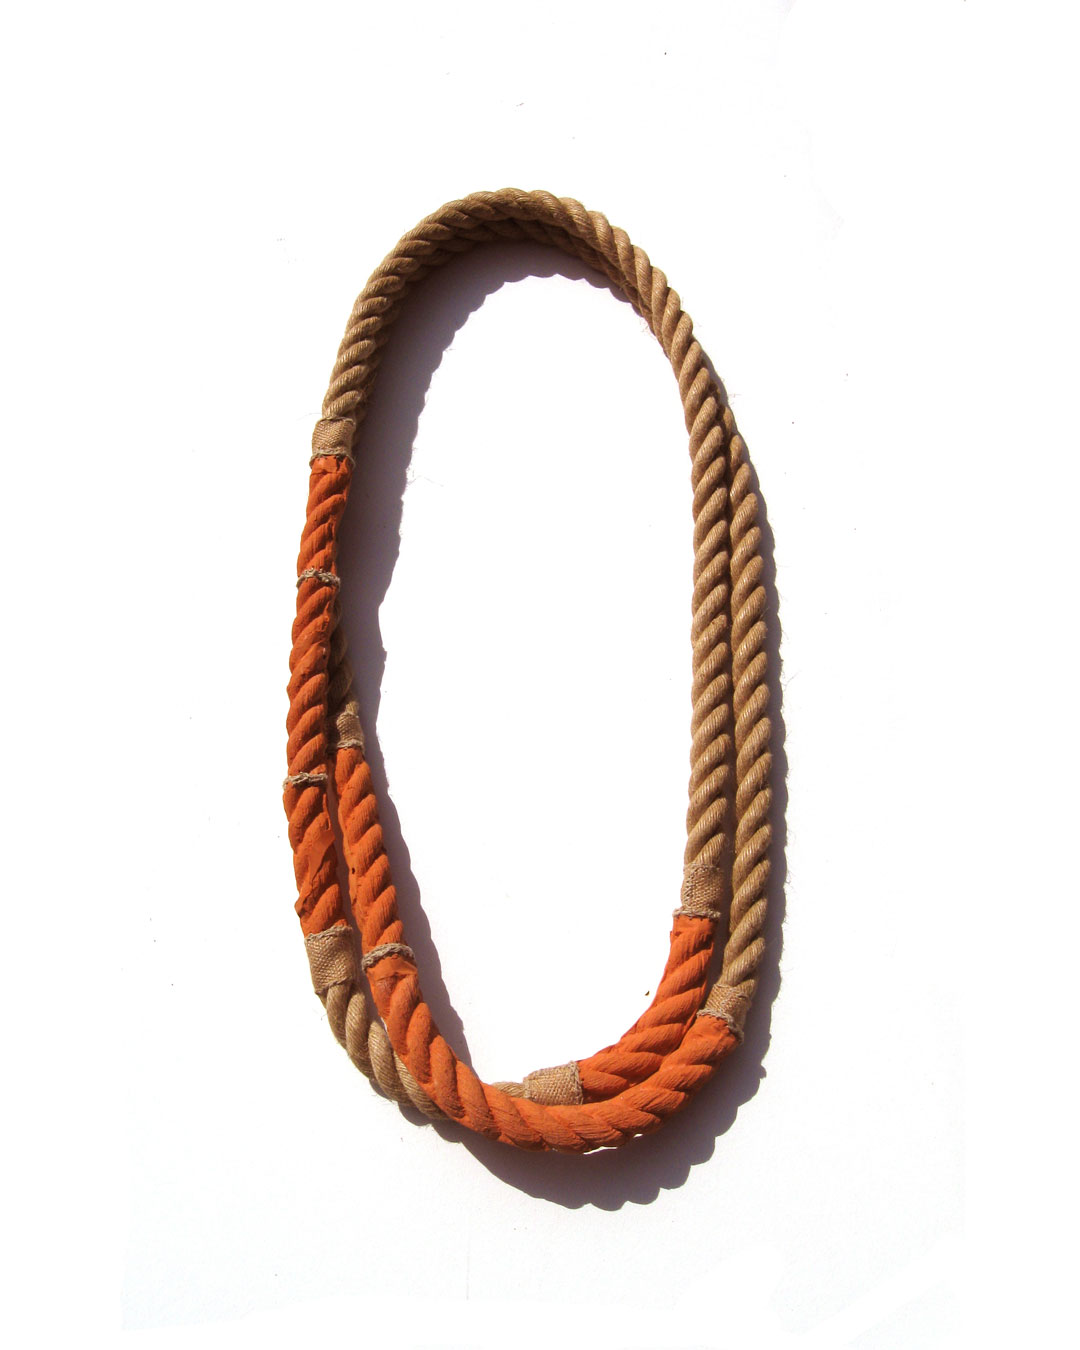 Willemijn de Greef, Touw (Rope), 2010, necklace; ceramic, hemp cord, 800 x 330 x 70 mm, €2000